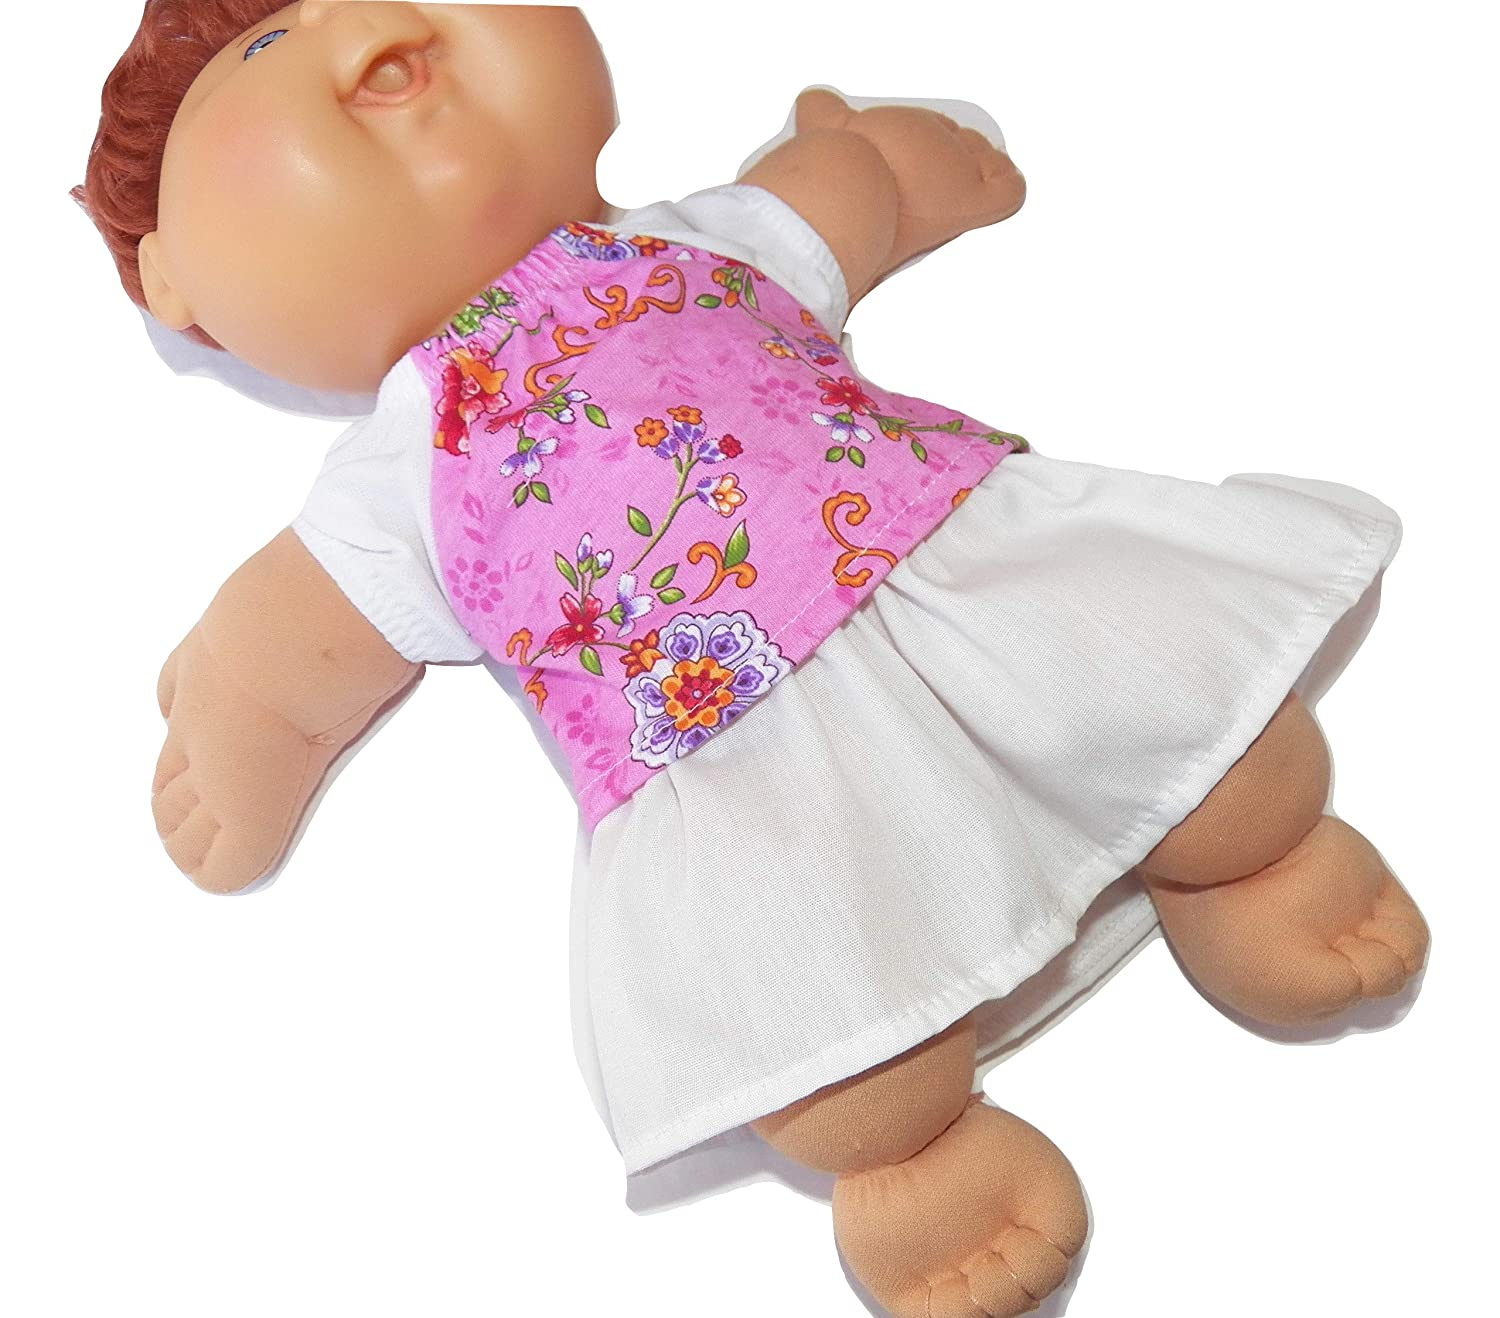 Cabbage Patch Doll Clothes Fits 14 Inch Kids Doll or Preemie Pink T-shirt and White Skirt Set